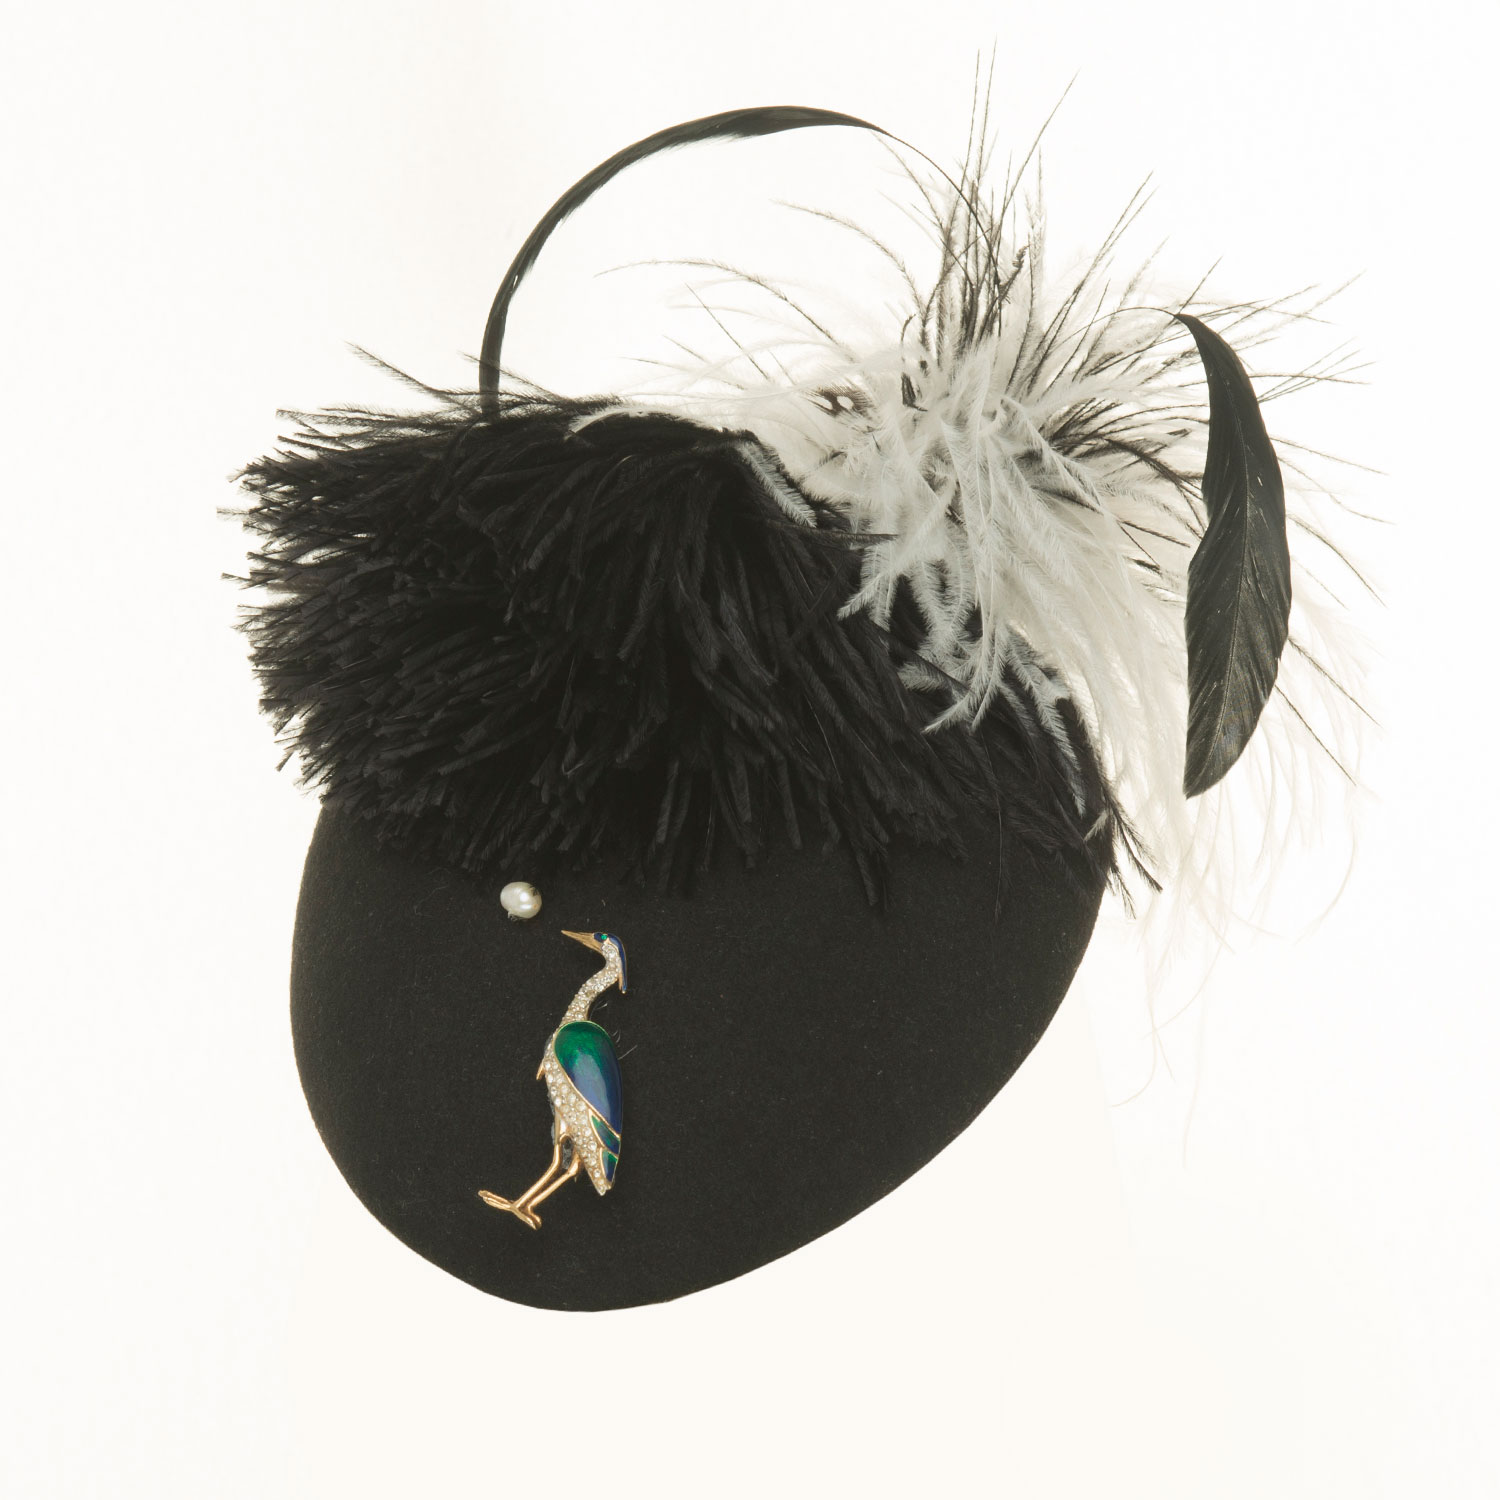 PEAR STORK AND FEATHER PILLBOX HAT